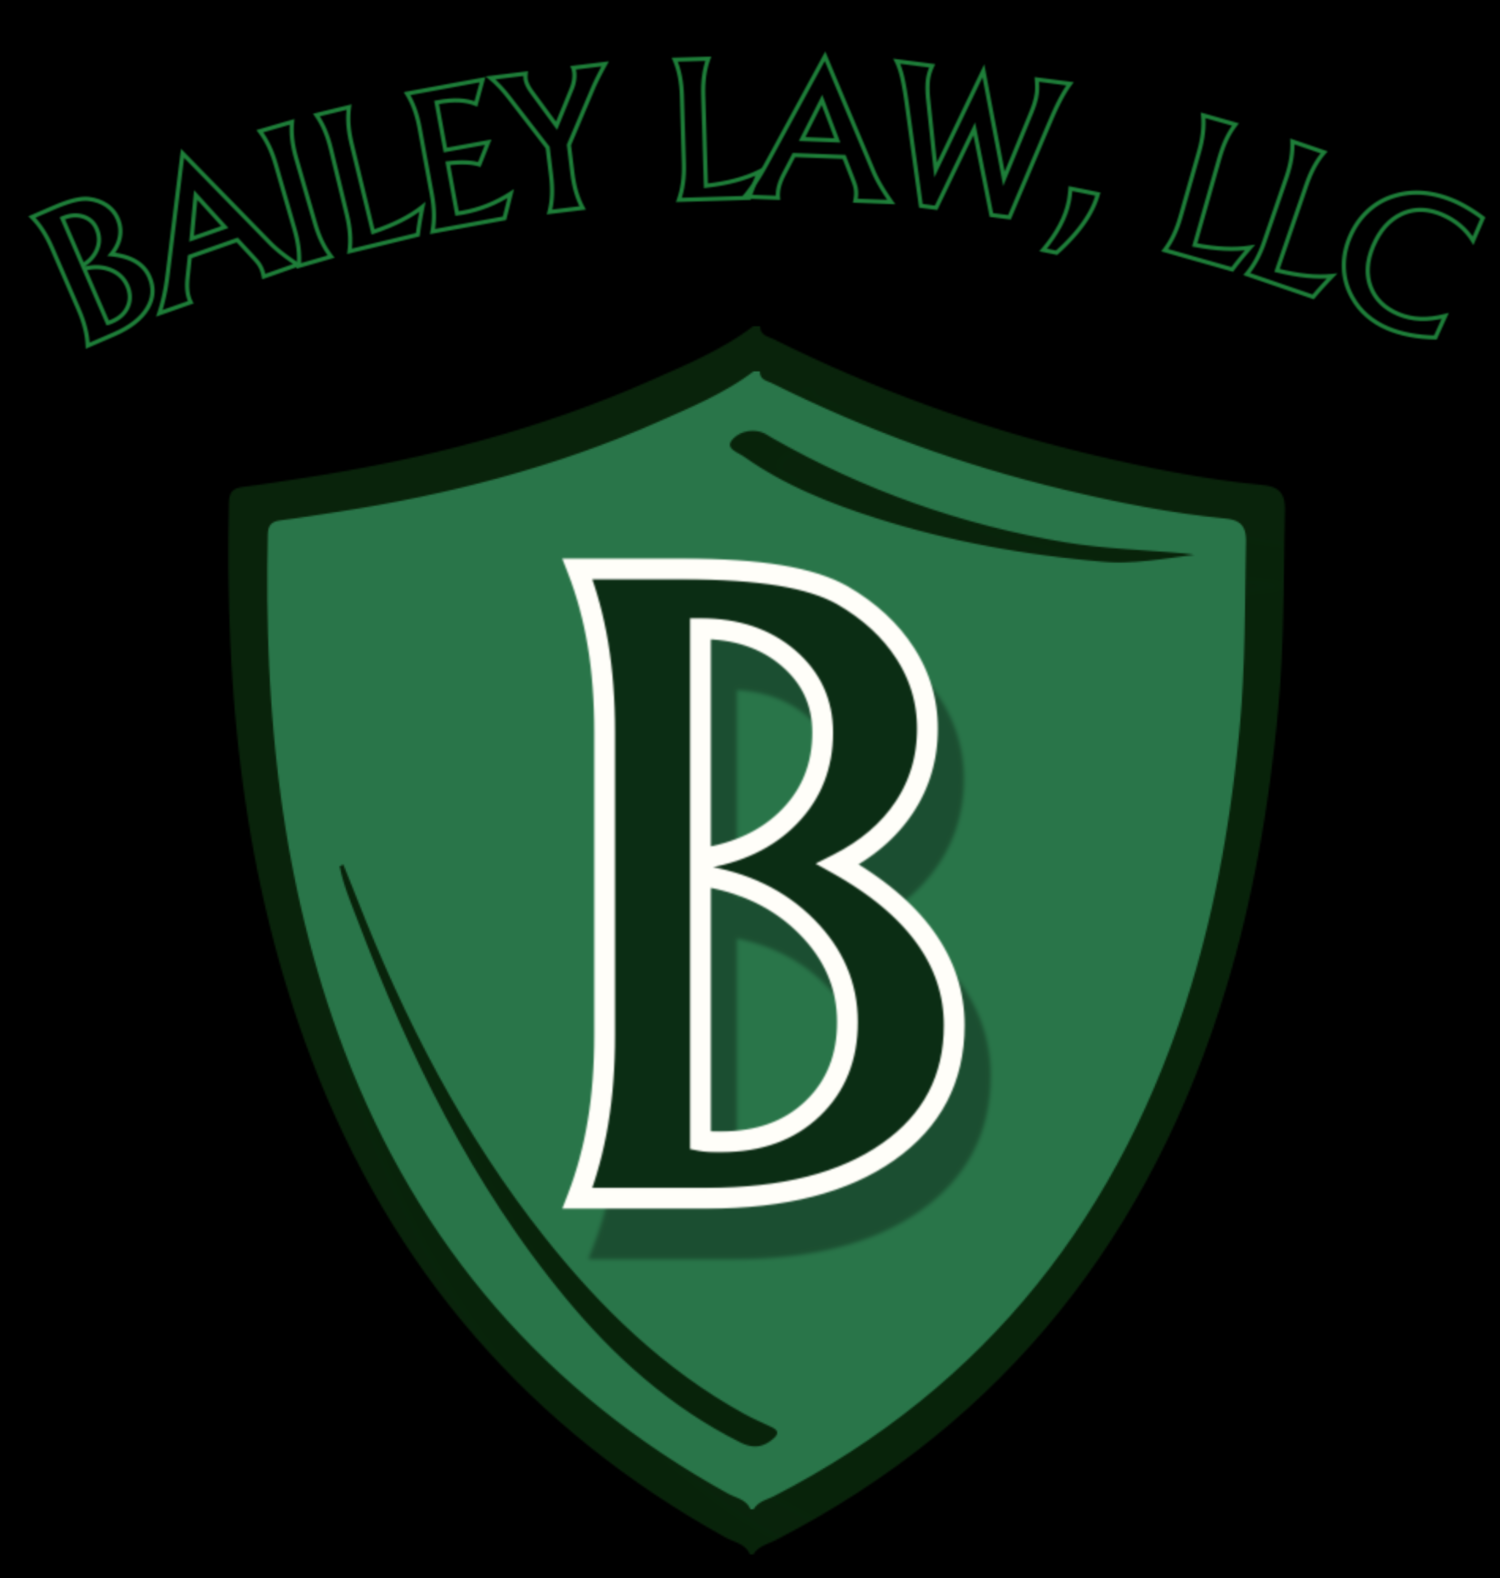 BAILEY LAW, LLC